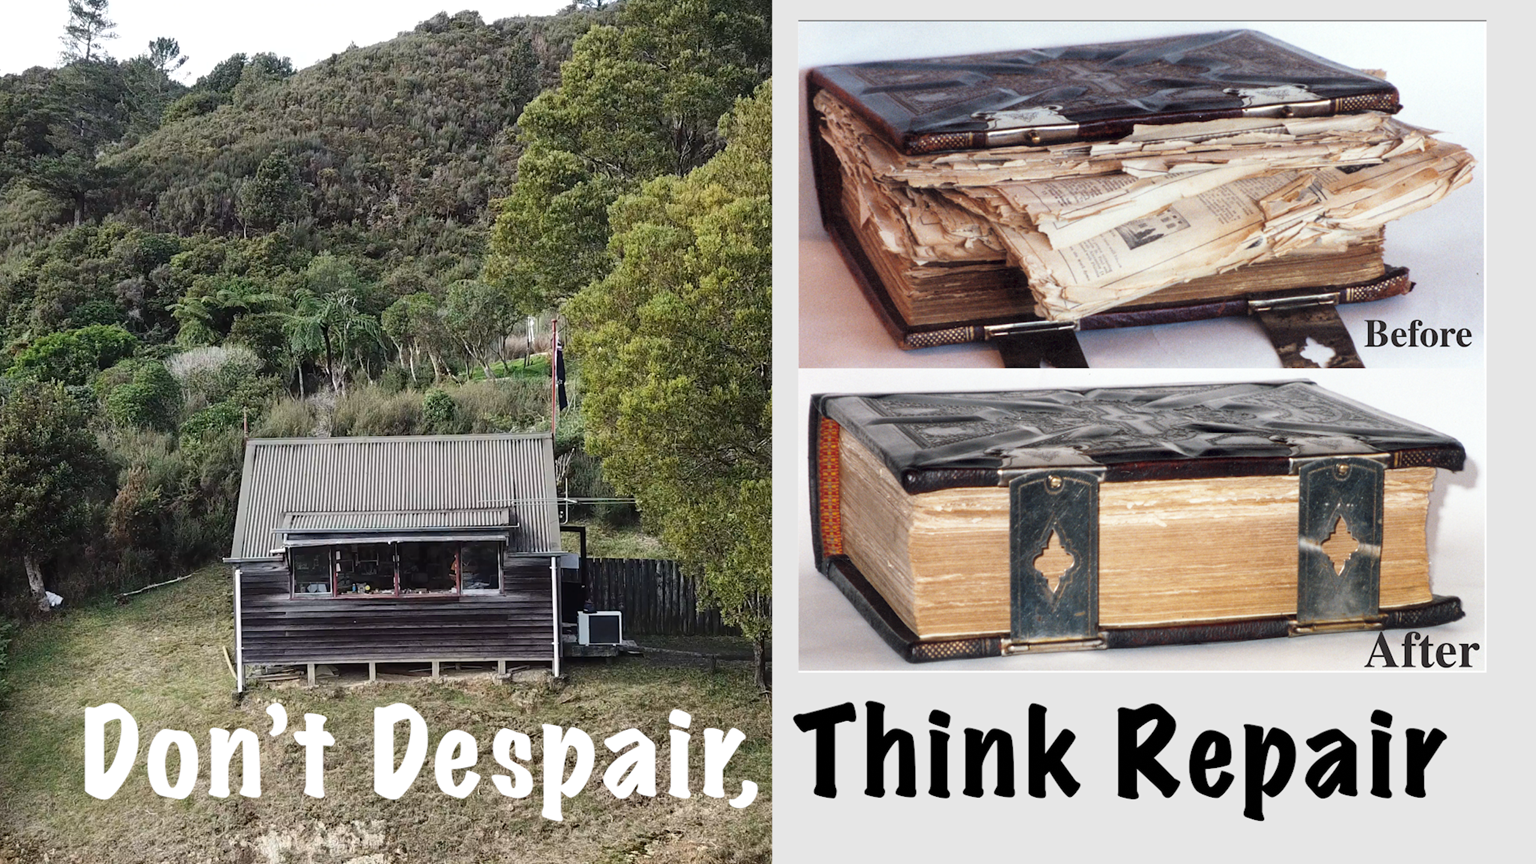 Don't Despair, Think Repair